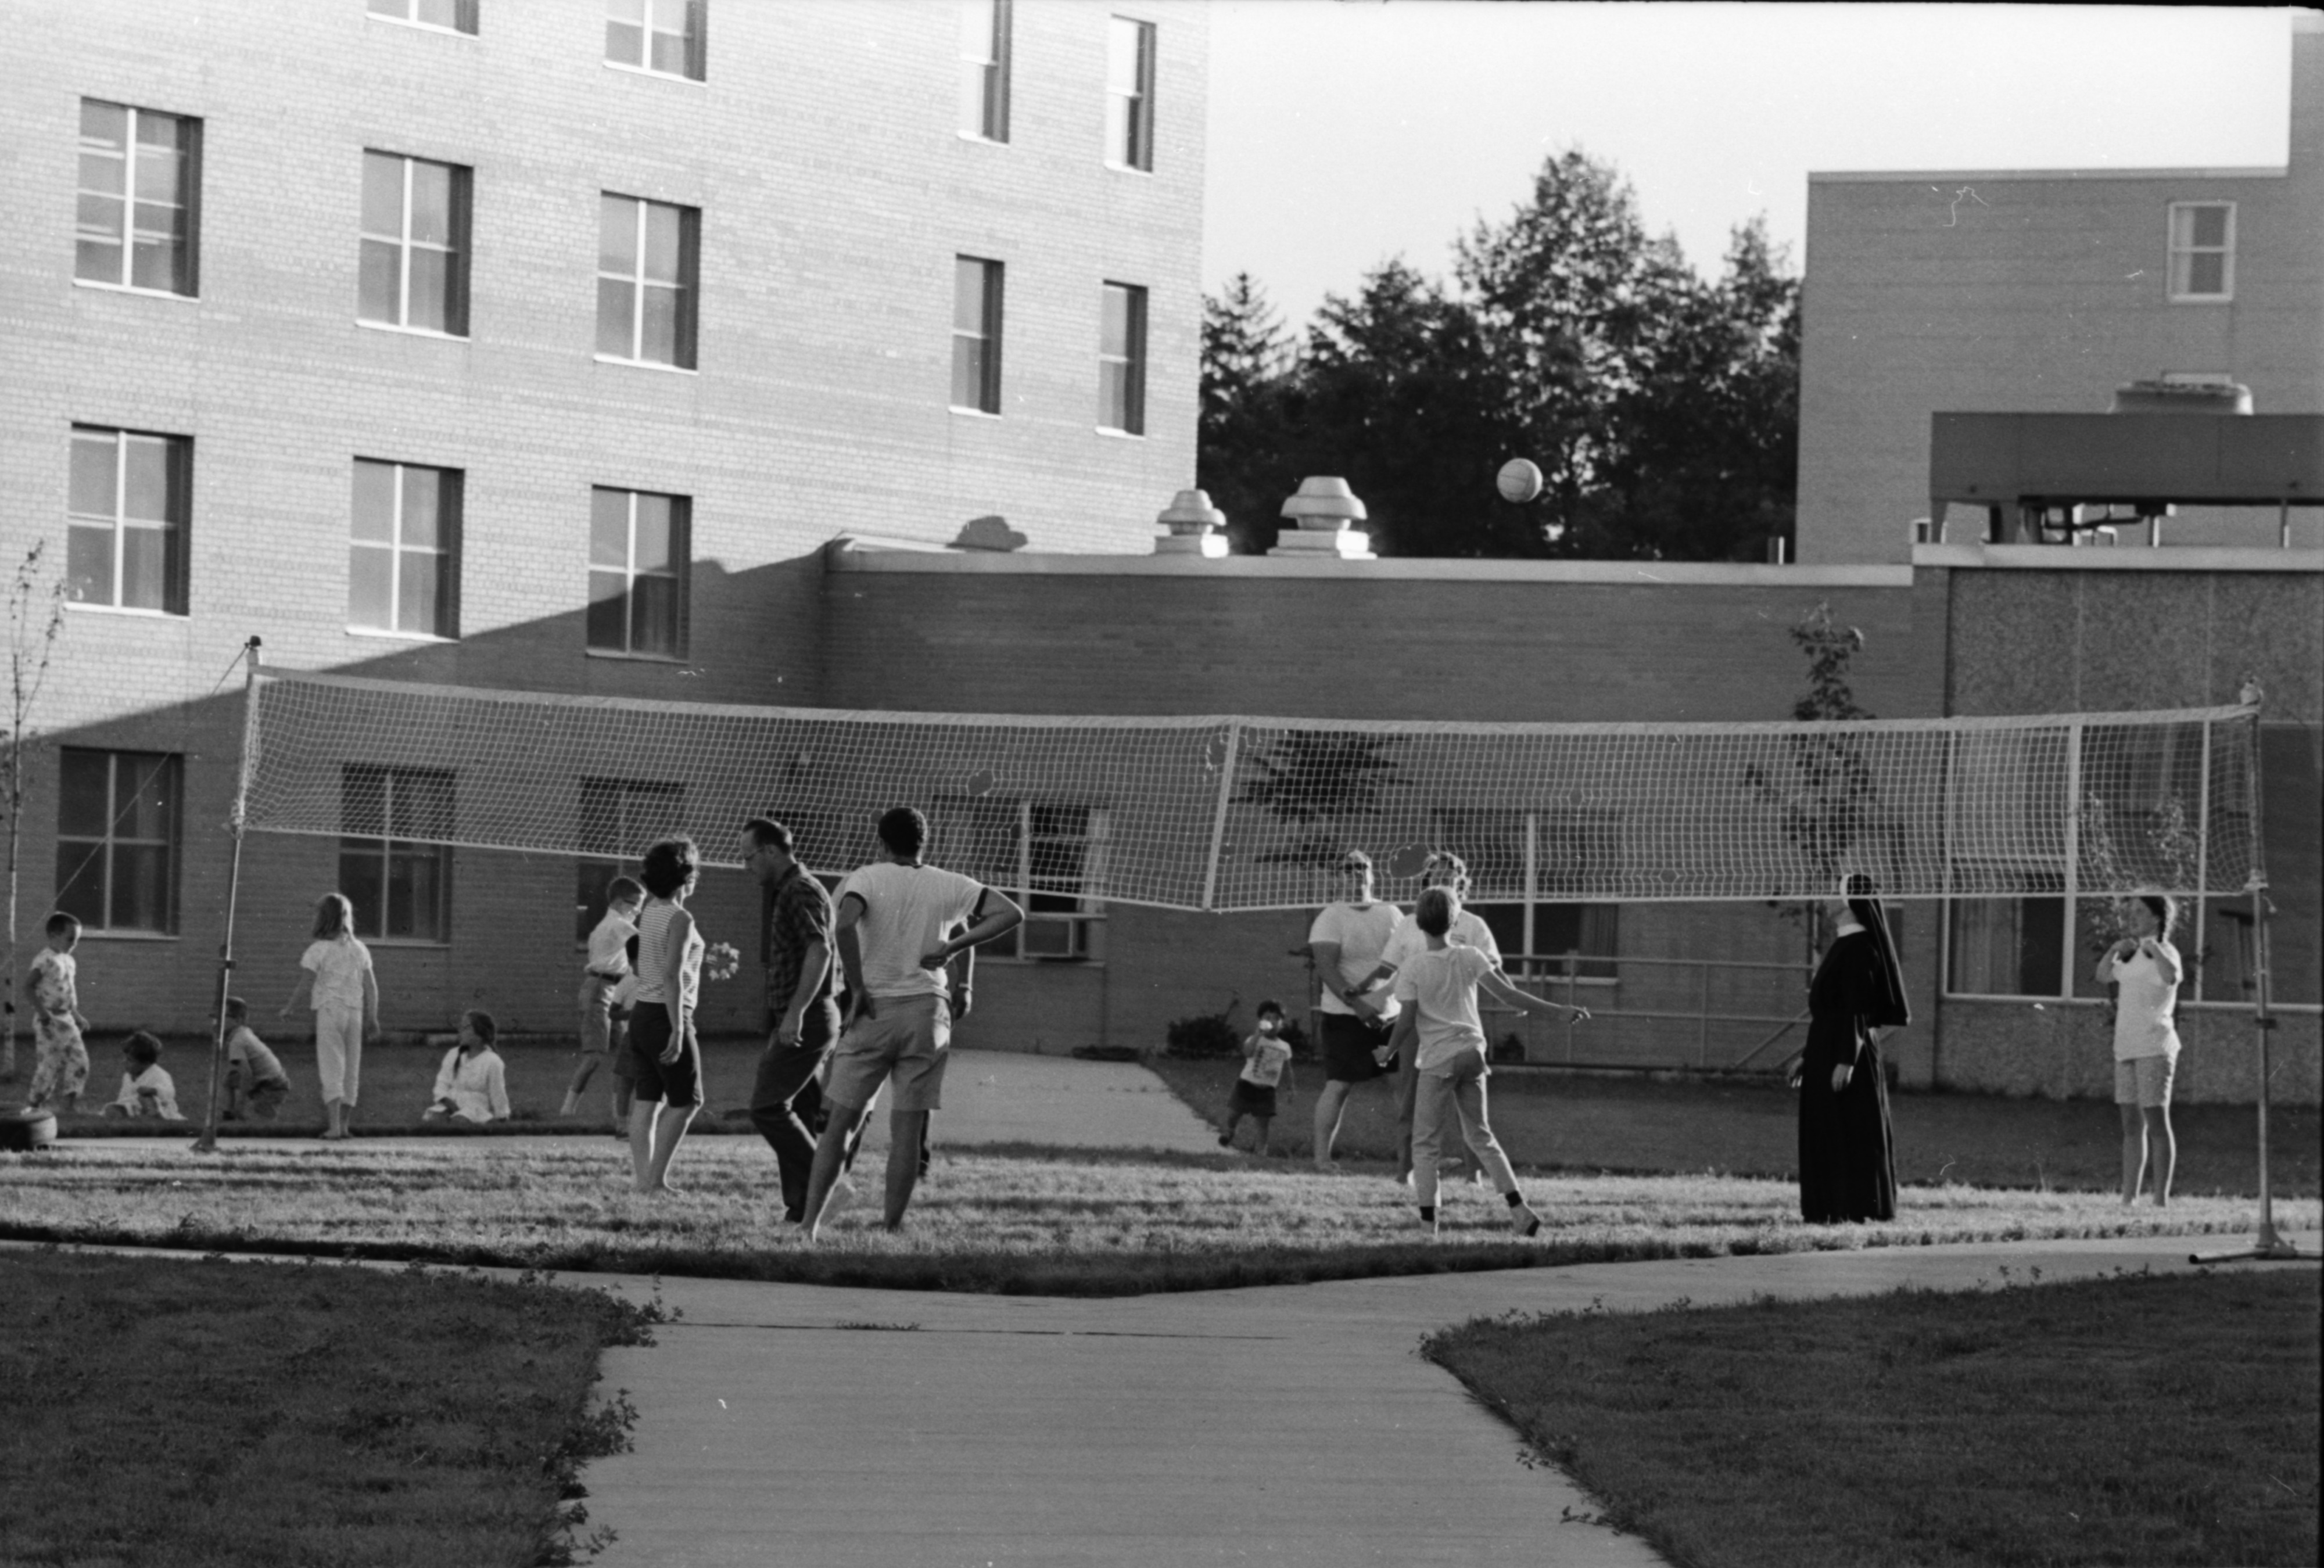 Volleyball Game at Eastern Michigan University, July 1968 image